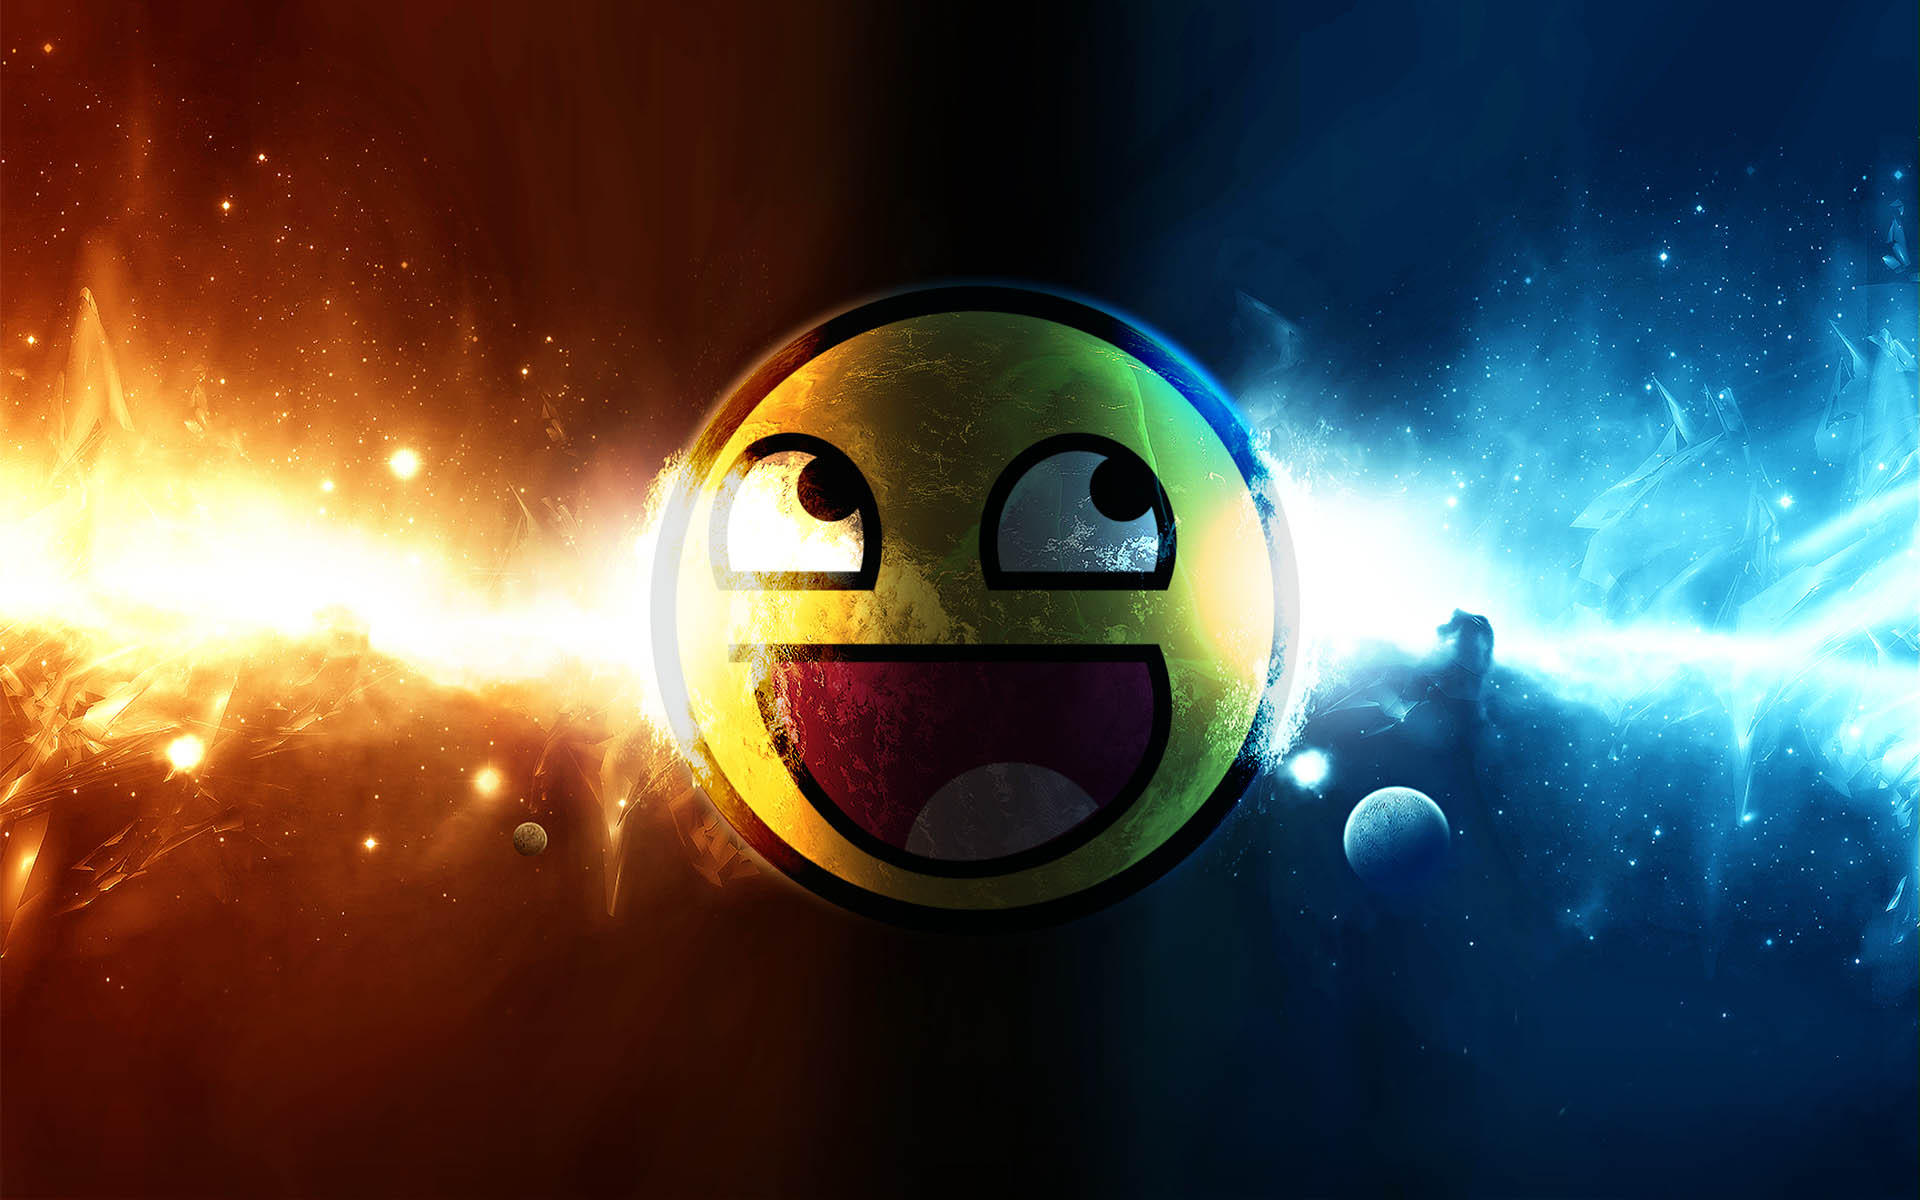 192 funny awesome smiley wallpaper 1920 x 1200 Wallpaper Widescreen 1920x1200